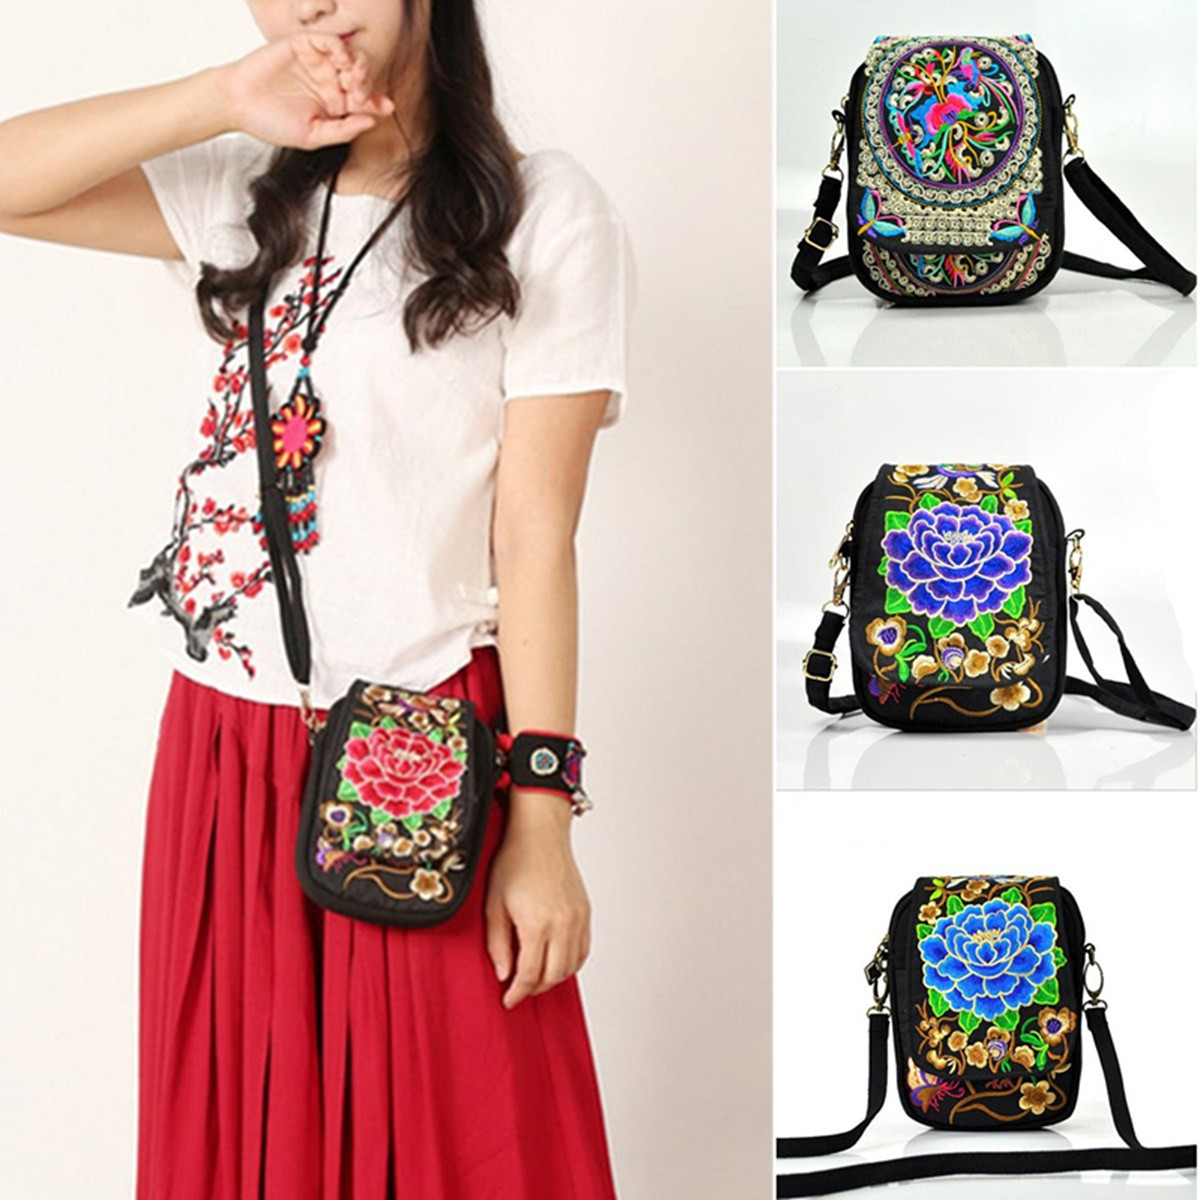 Women Mini Embroidered Flower Wallet Case Cash Crossbody Zipper Phone Bag for Phone under 6.5 inches